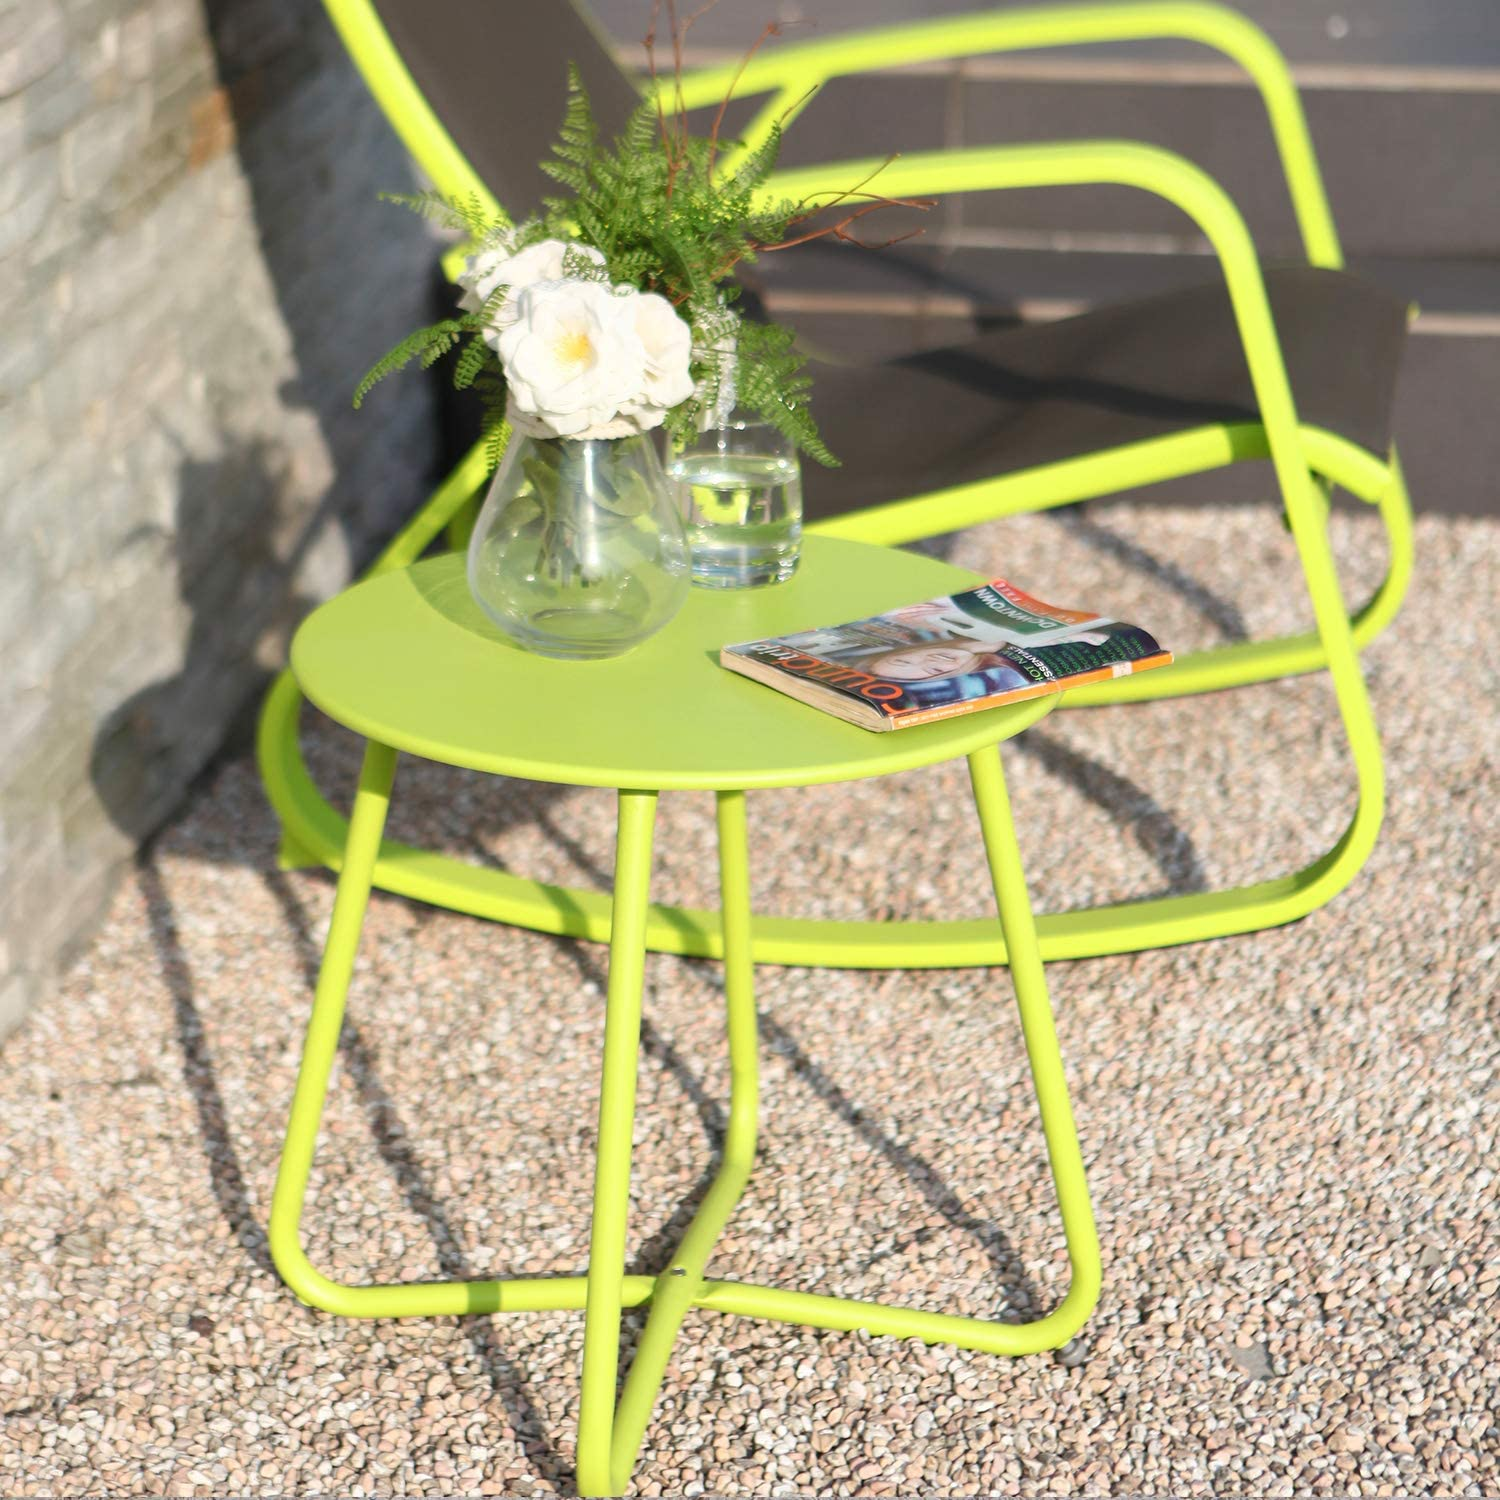 Grand patio Premium Indoor/Outdoor Round Metal Weather-Resistant Side/Accent Table for Patio, Yard, Balcony, Garden (Lime Green): Kitchen & Dining